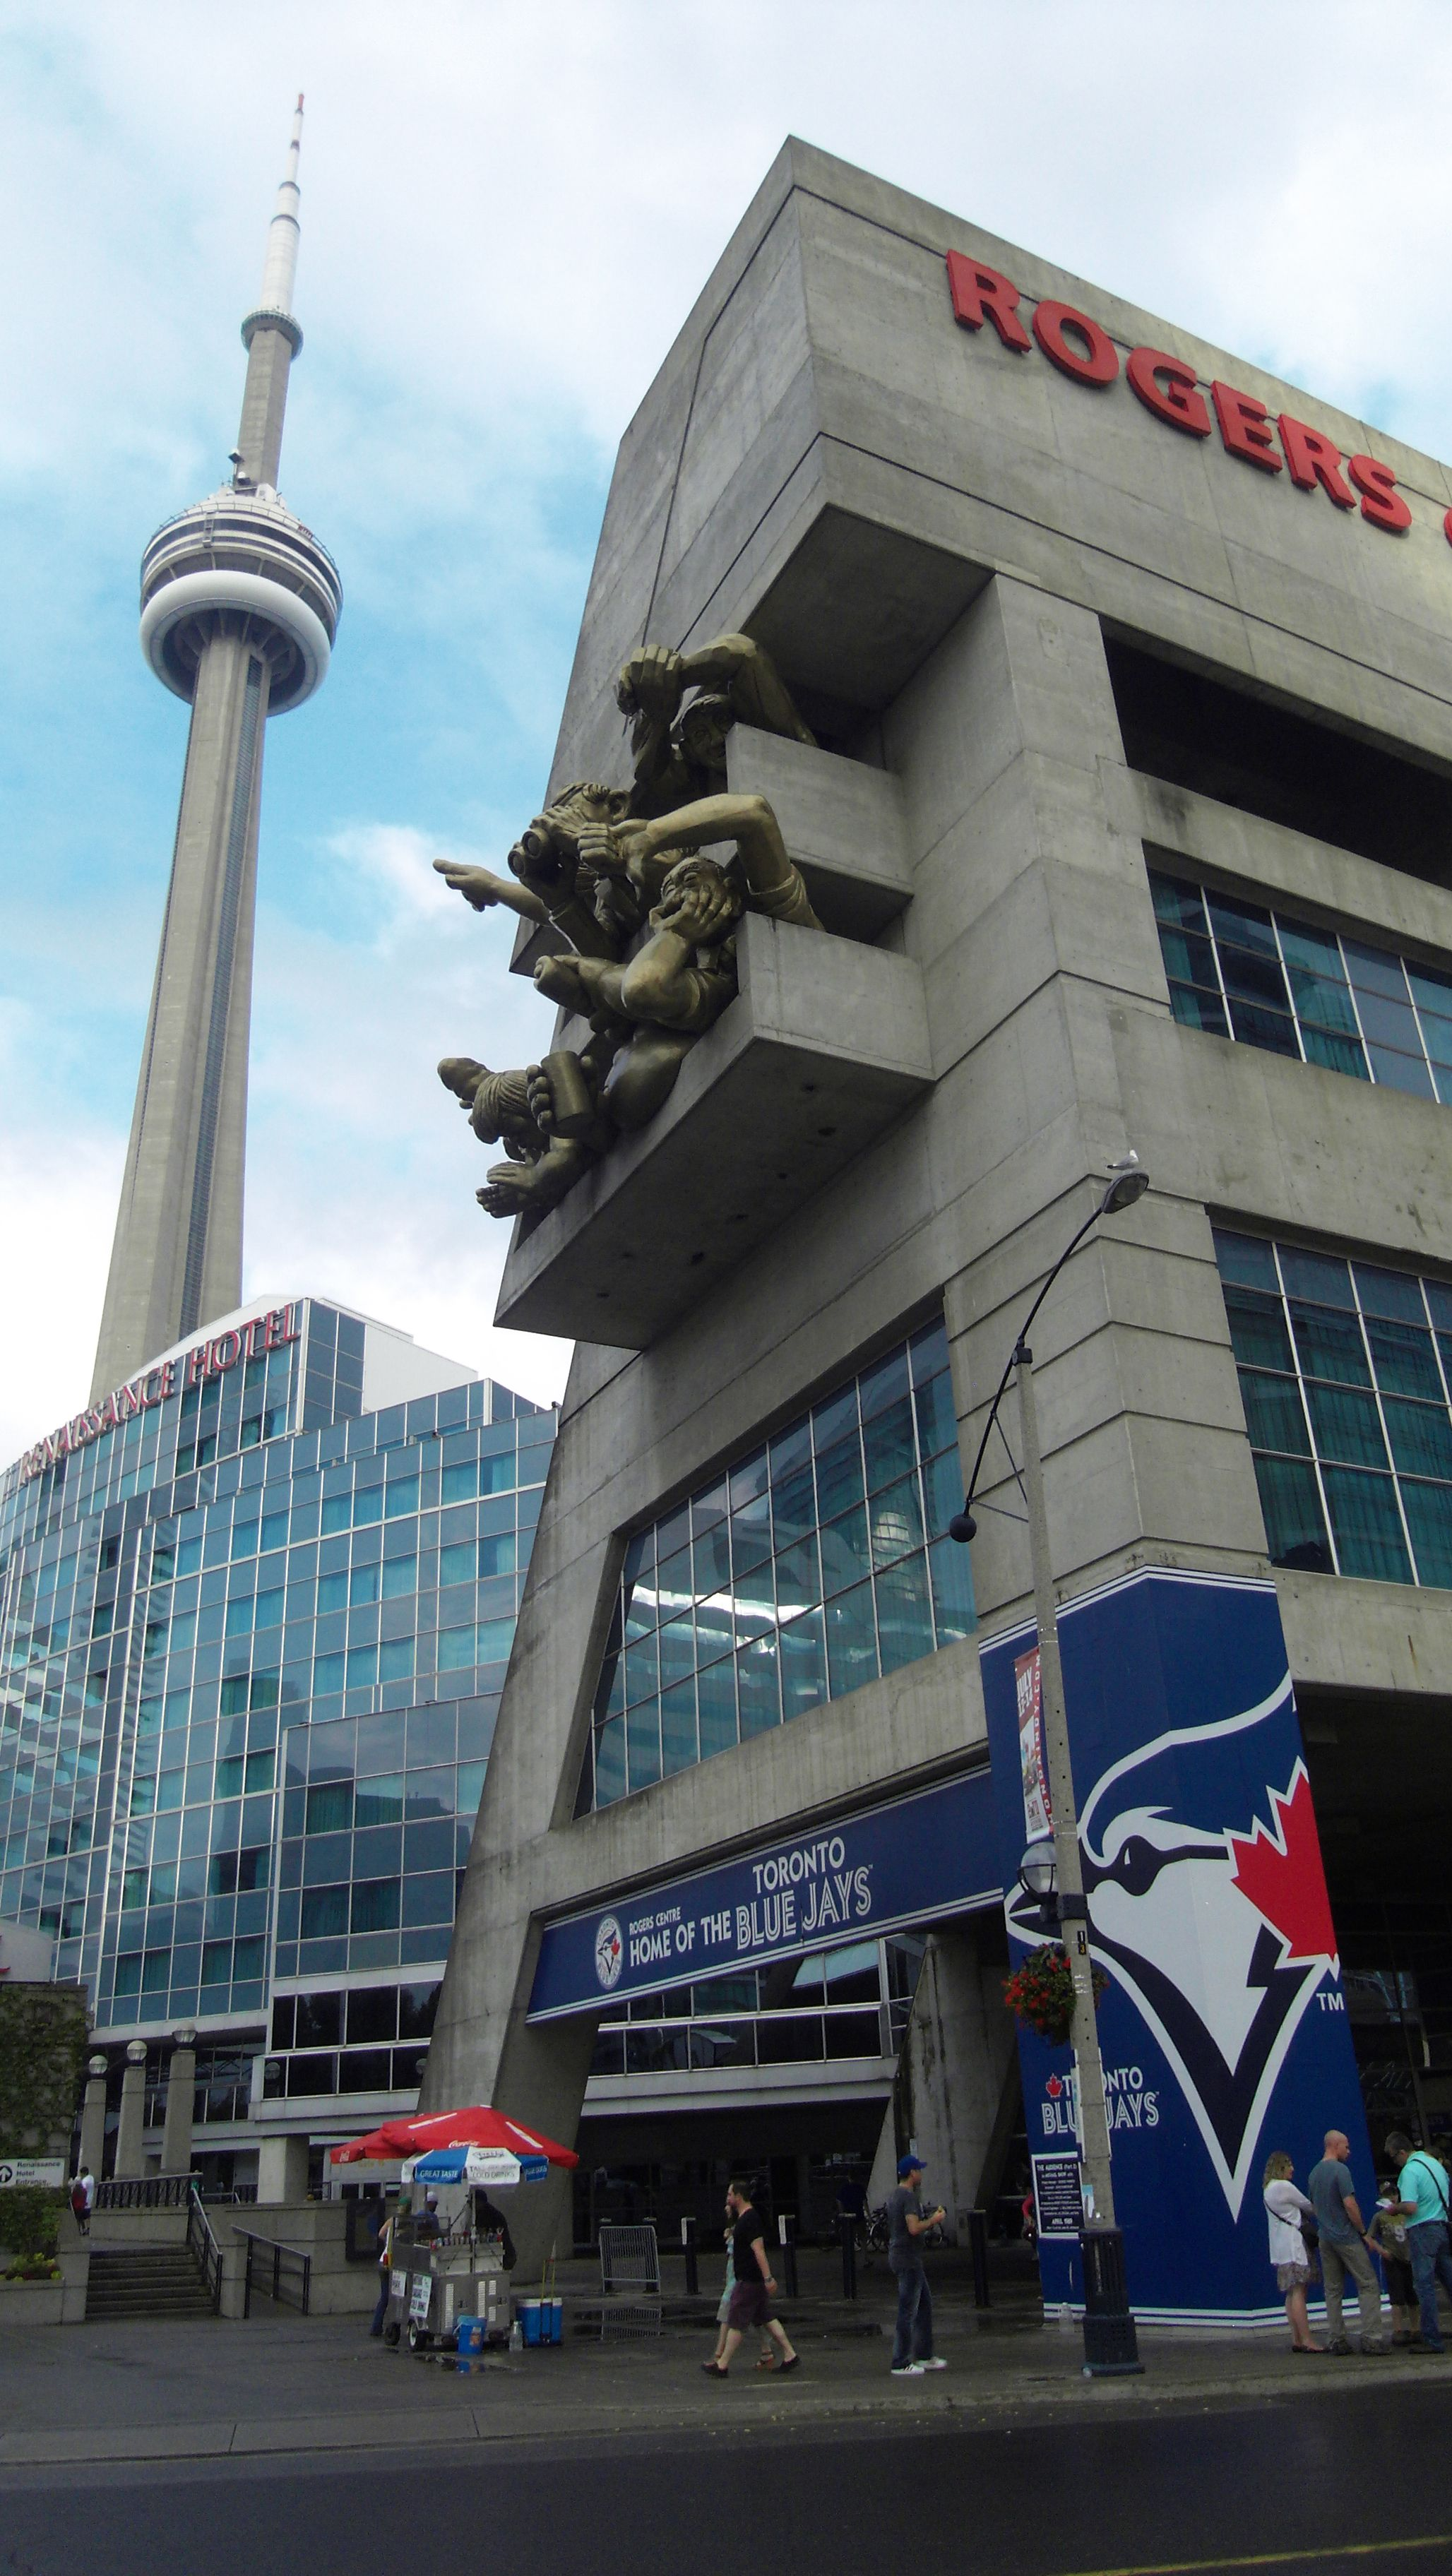 Short walk from Union Station (subway and train station). Just north of Toronto's Harbourfront, The Rogers Centre is also accessible from Lake Shore Blvd at the Spadina exit